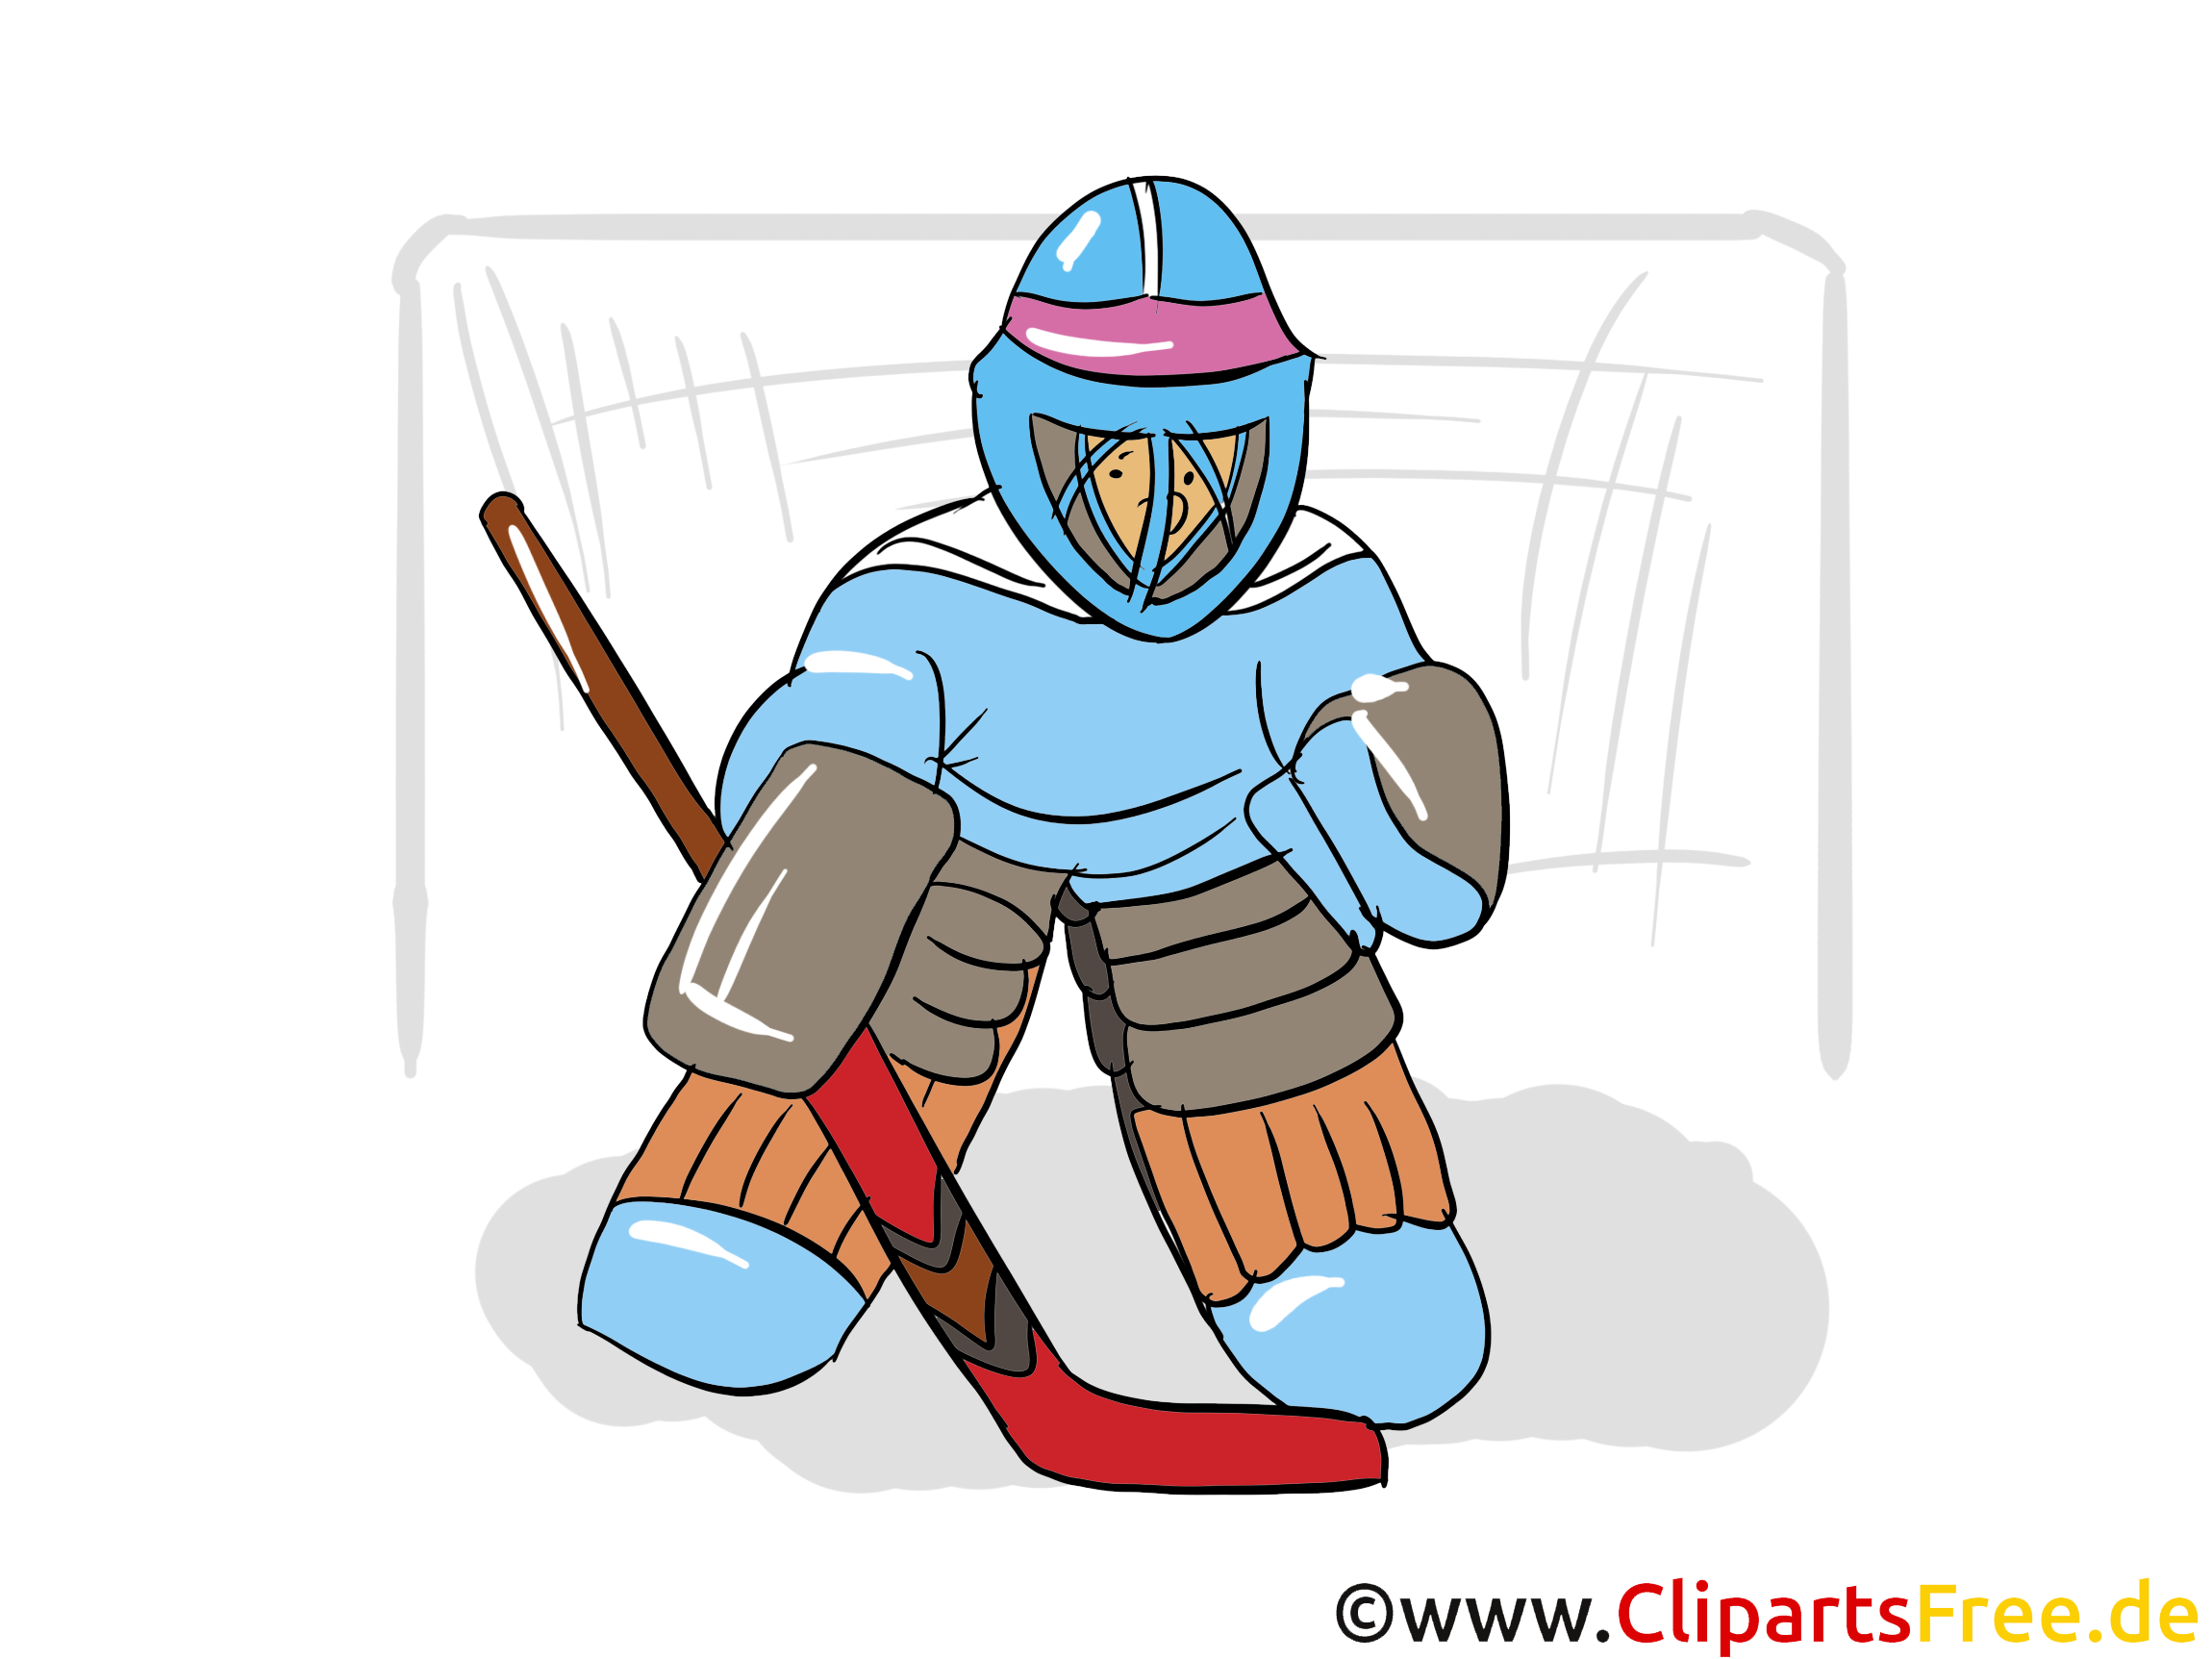 Clipart gratuit gardien de but - Hockey images